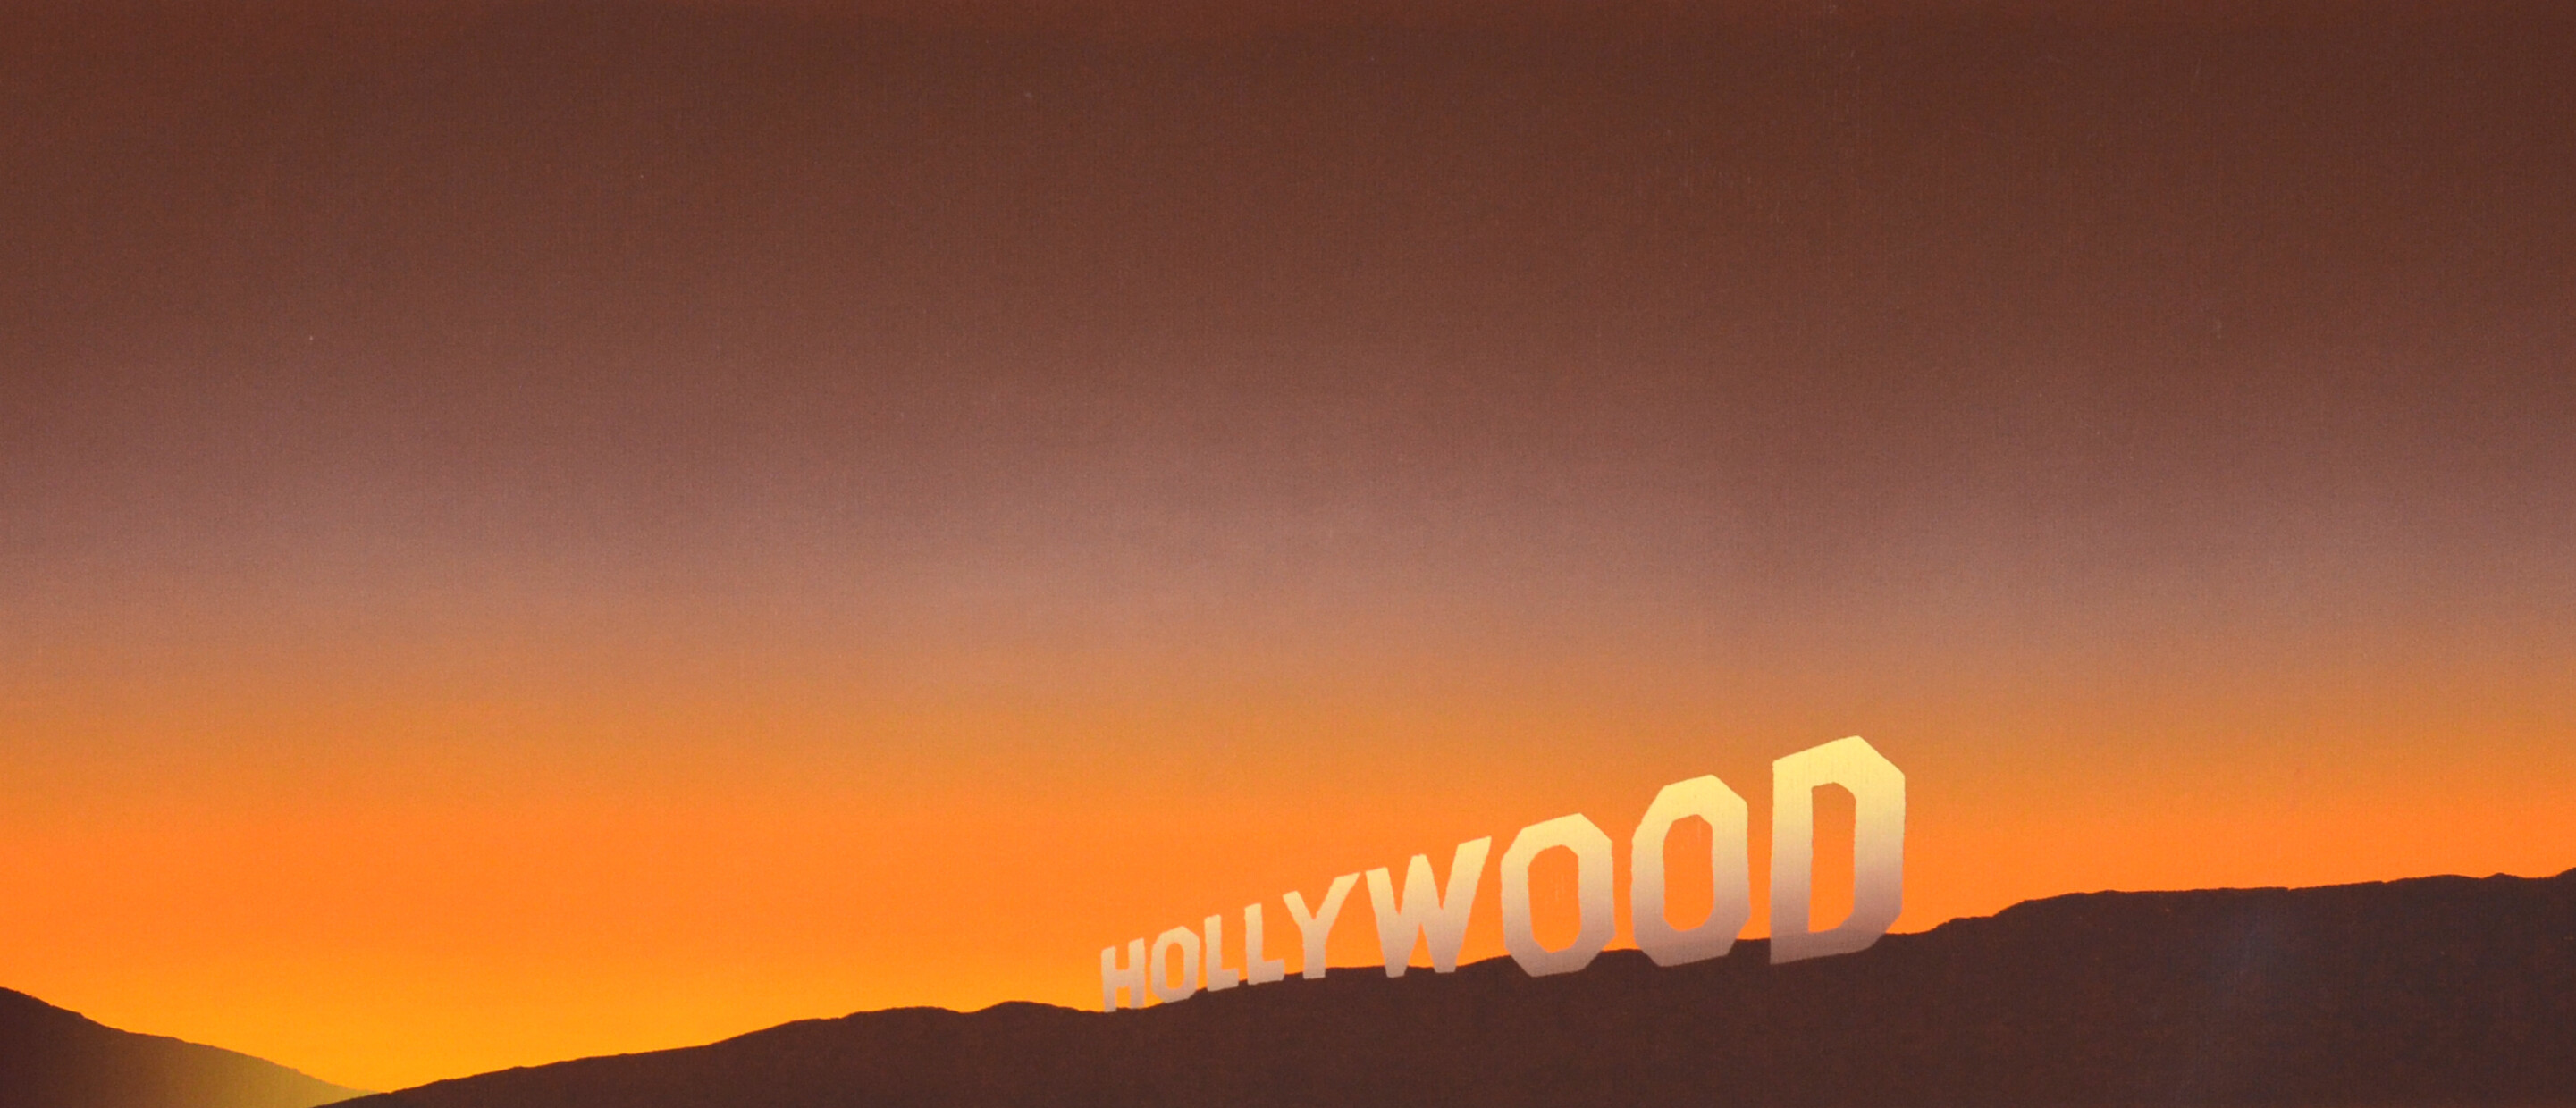 Orange tinged sky behind HOLLYWOOD sign landscape painting